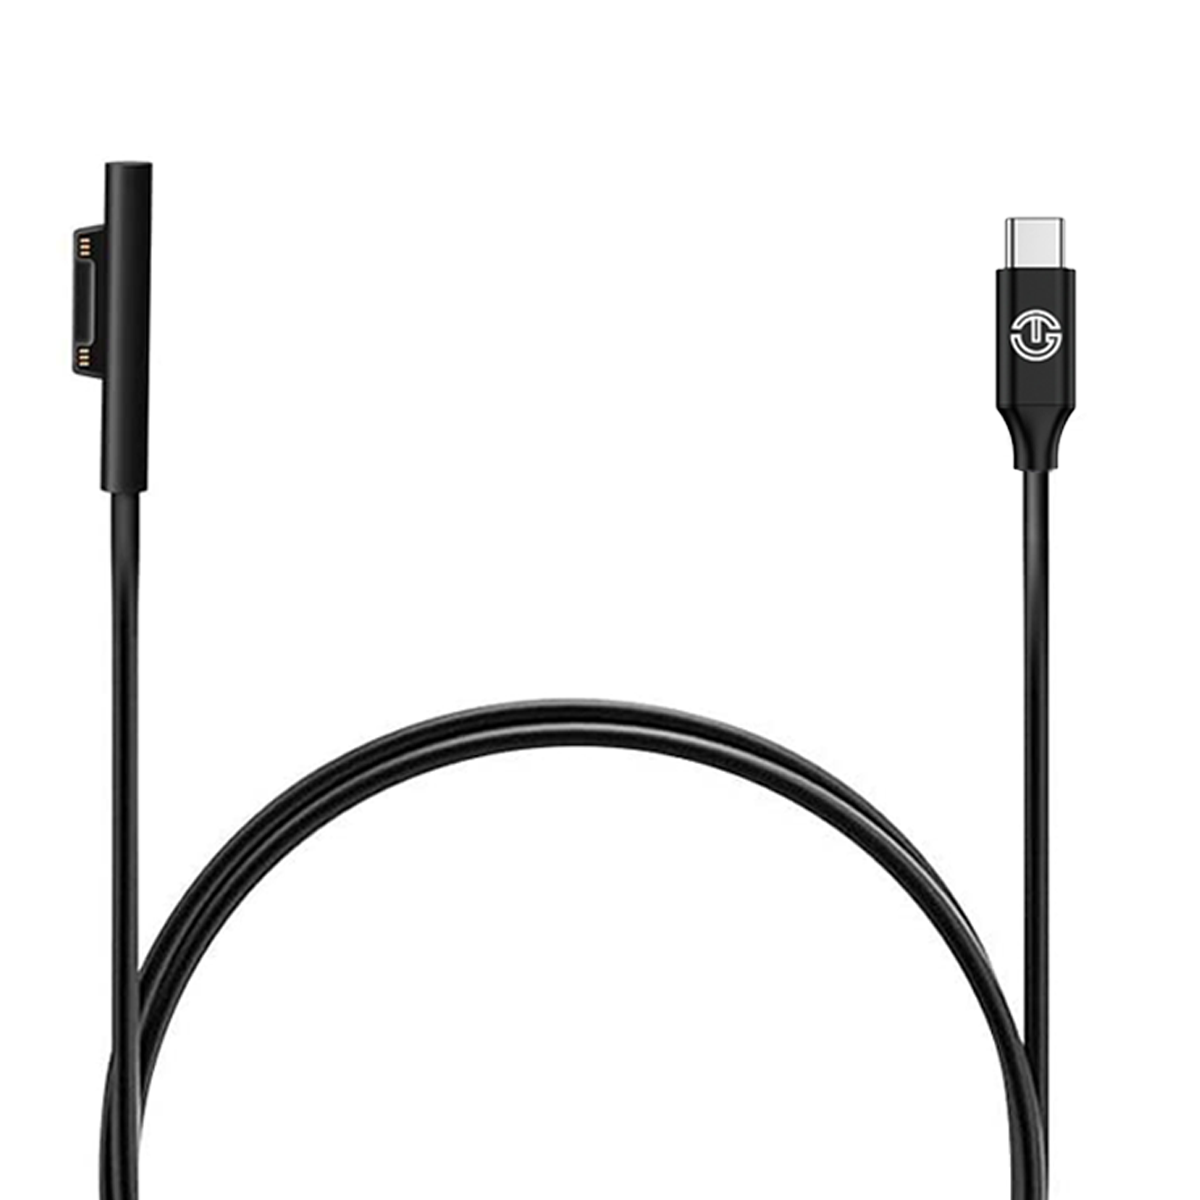 Surface Connect to USB-C Charging Cable